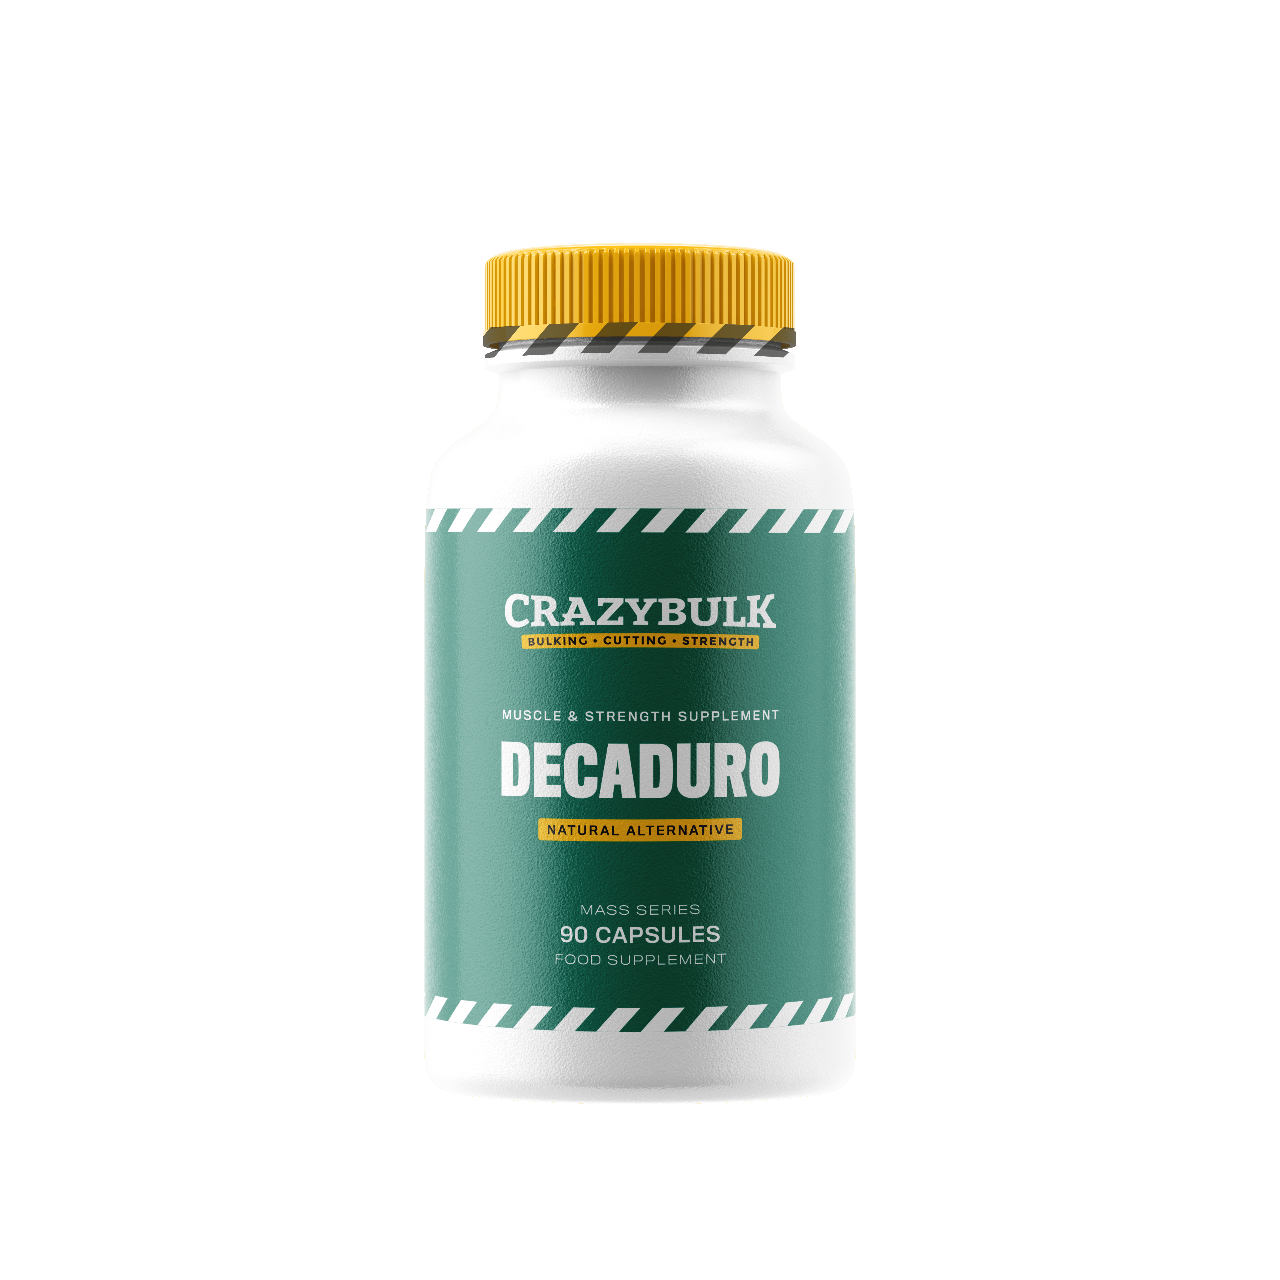 Crazy Bulk Decaduro Review and Results - The Legal Steroid Alternative for Bulking